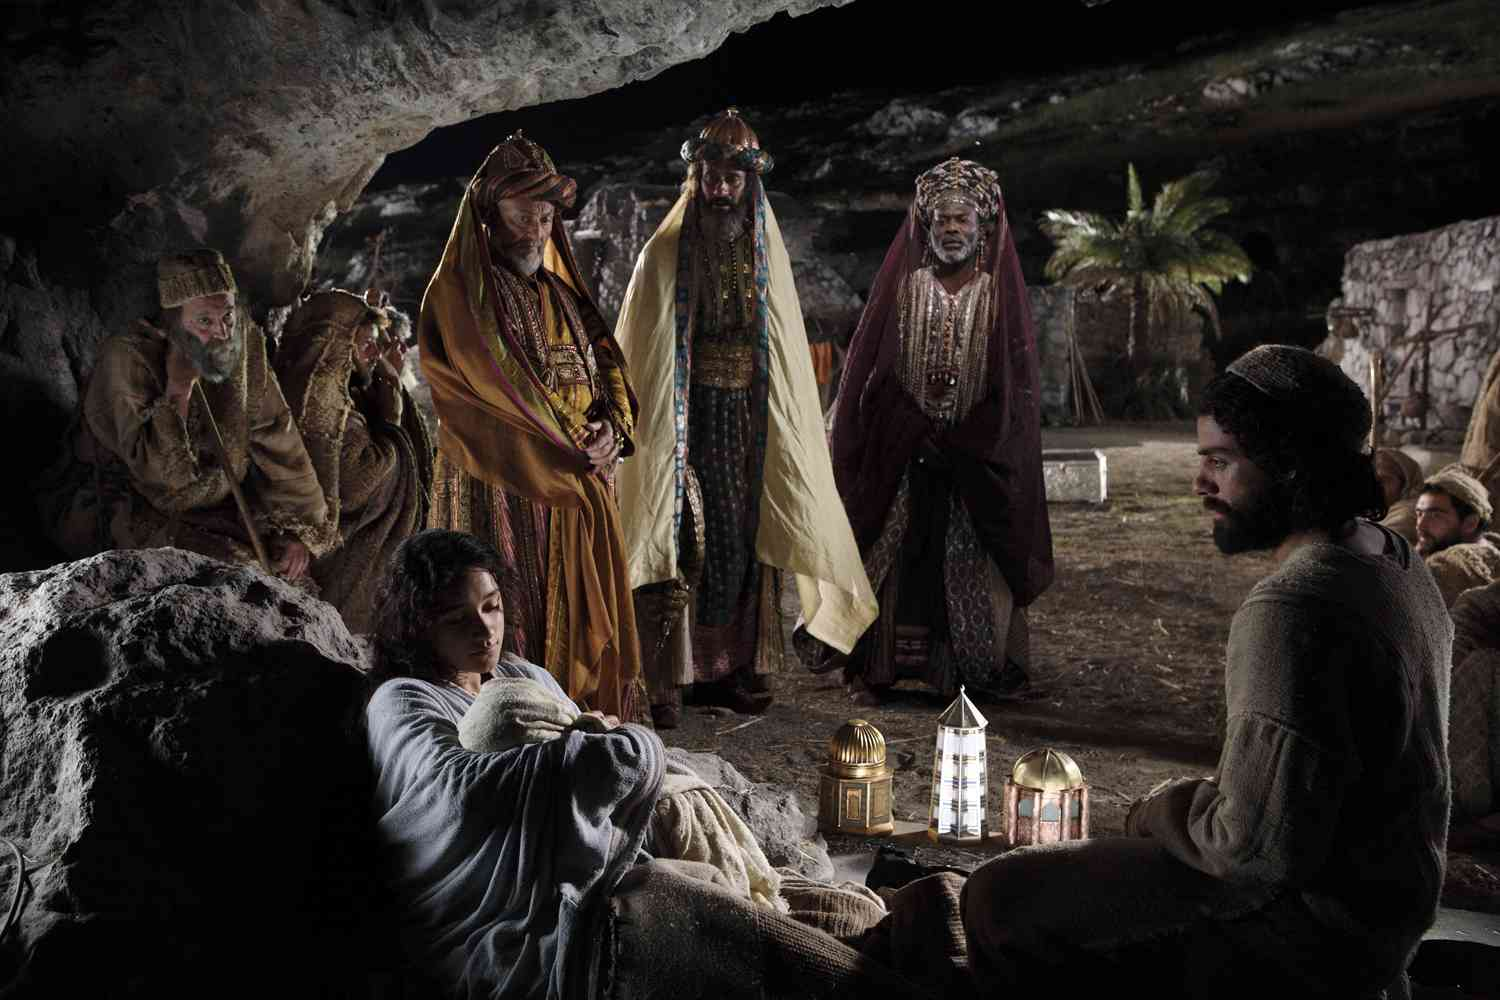 Image from the Nativity Movie